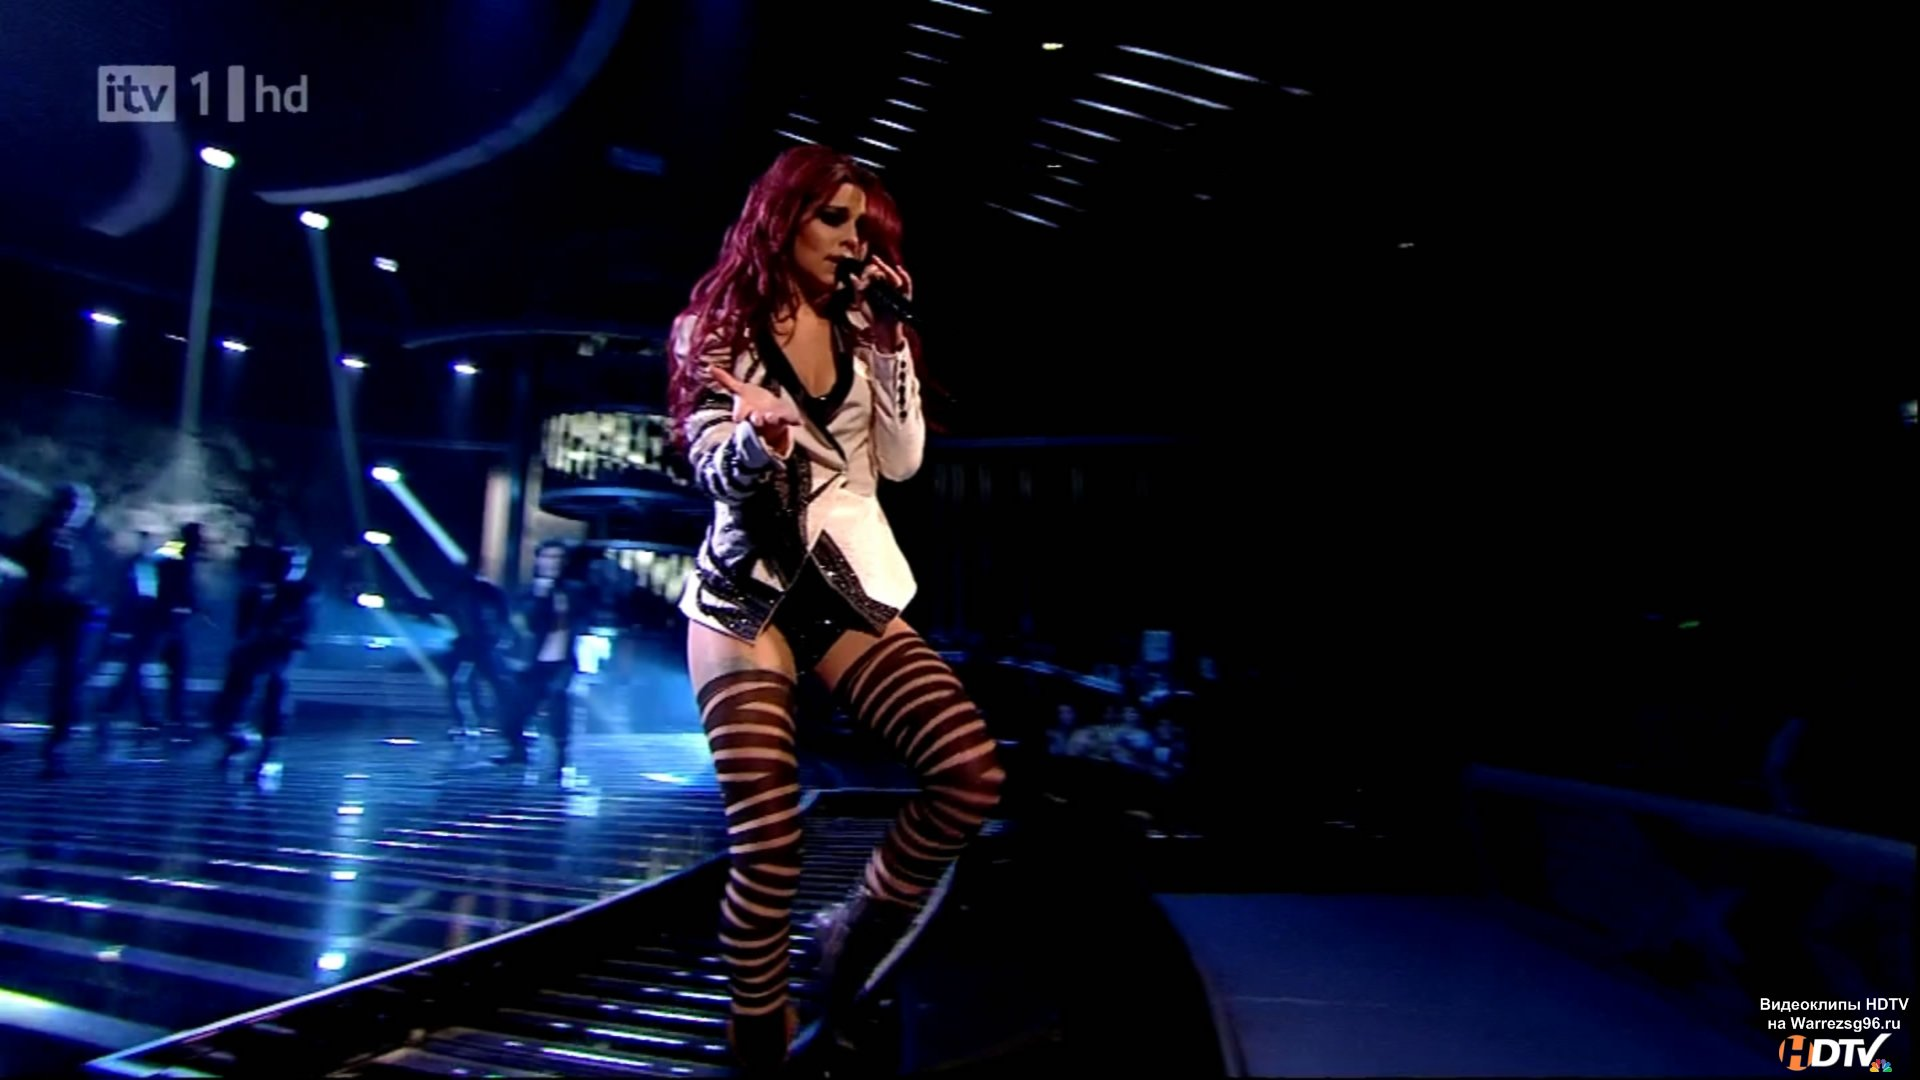 Cheryl s best outfits - a guide to the star s latest looks - Cosmopolitan 40